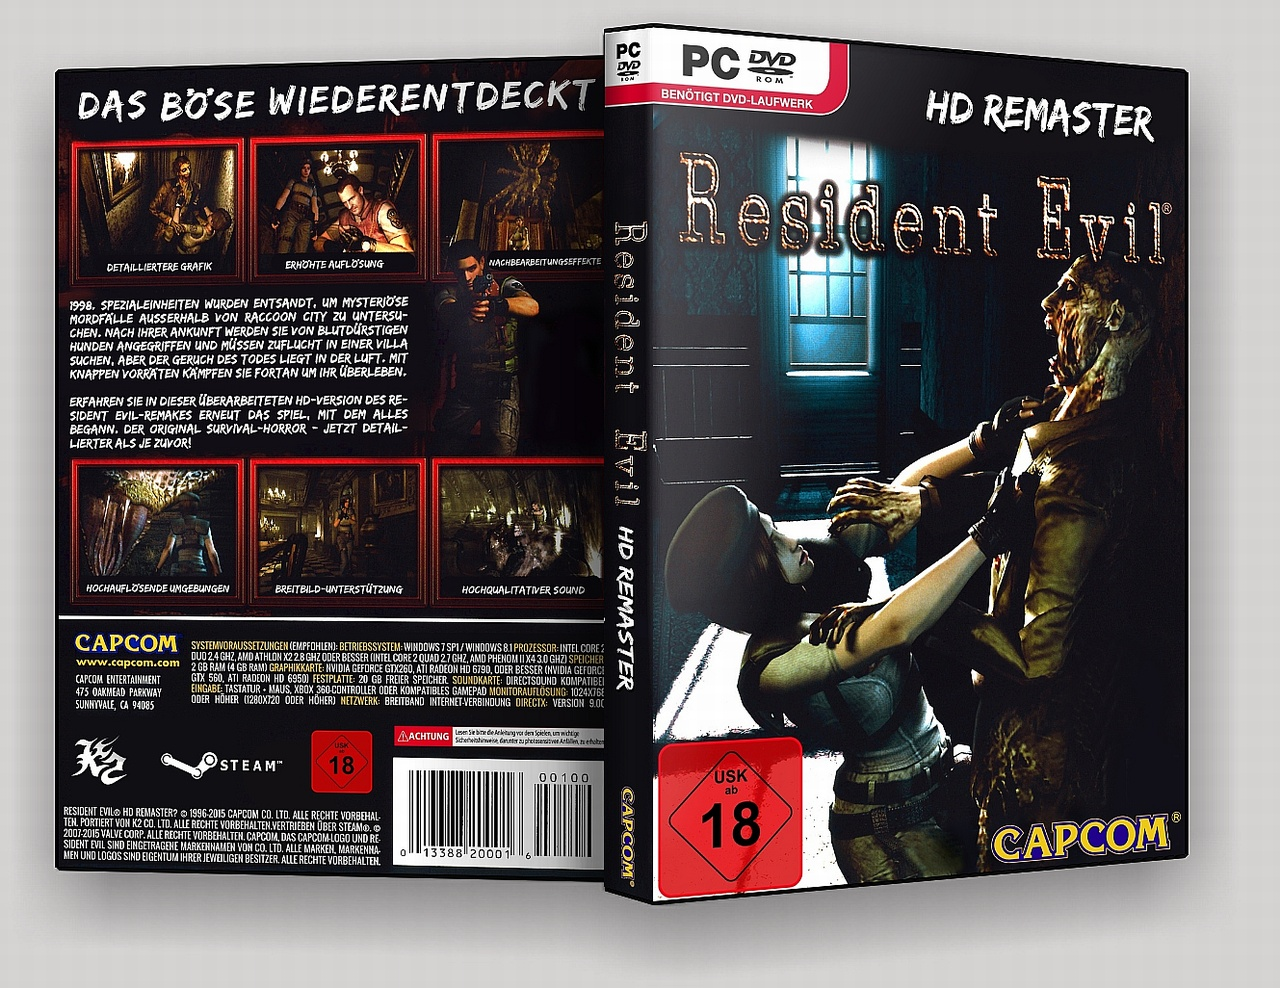 Resident Evil - HD Remaster box cover